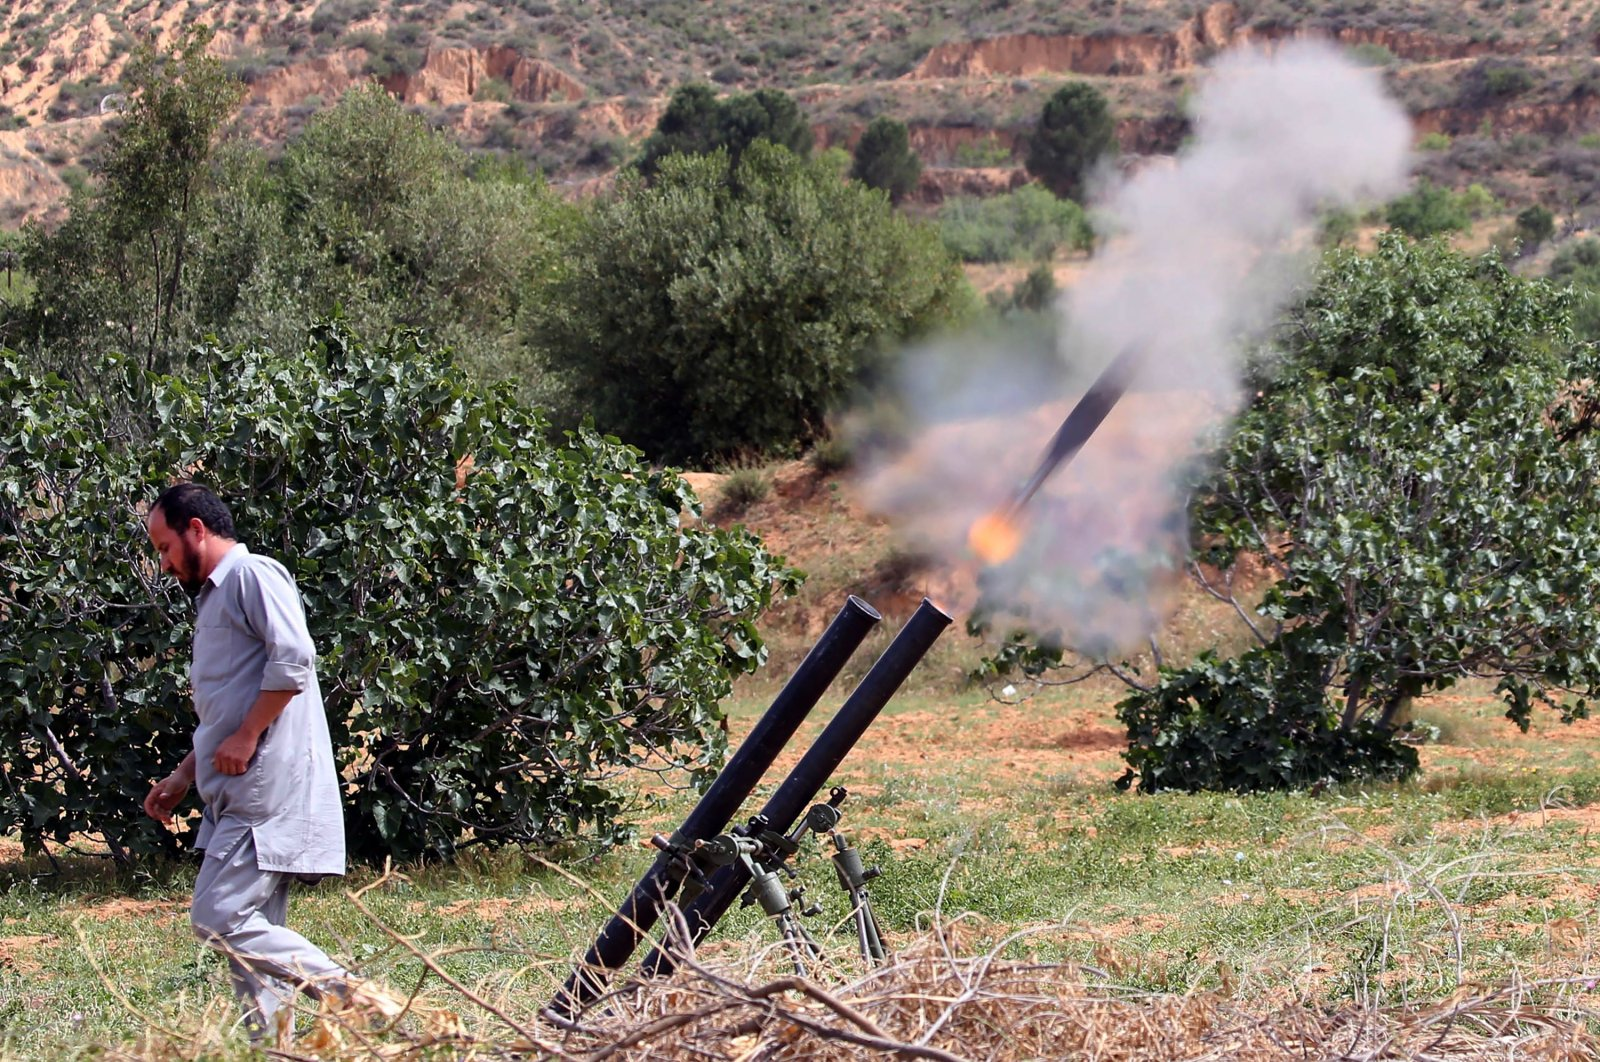 A fighter with Libya's UN-recognised Government of National Accord (GNA) fires rockets from a position near the town of Garabulli toward the city of Tarhuna, on April 19, 2020. (AFP)